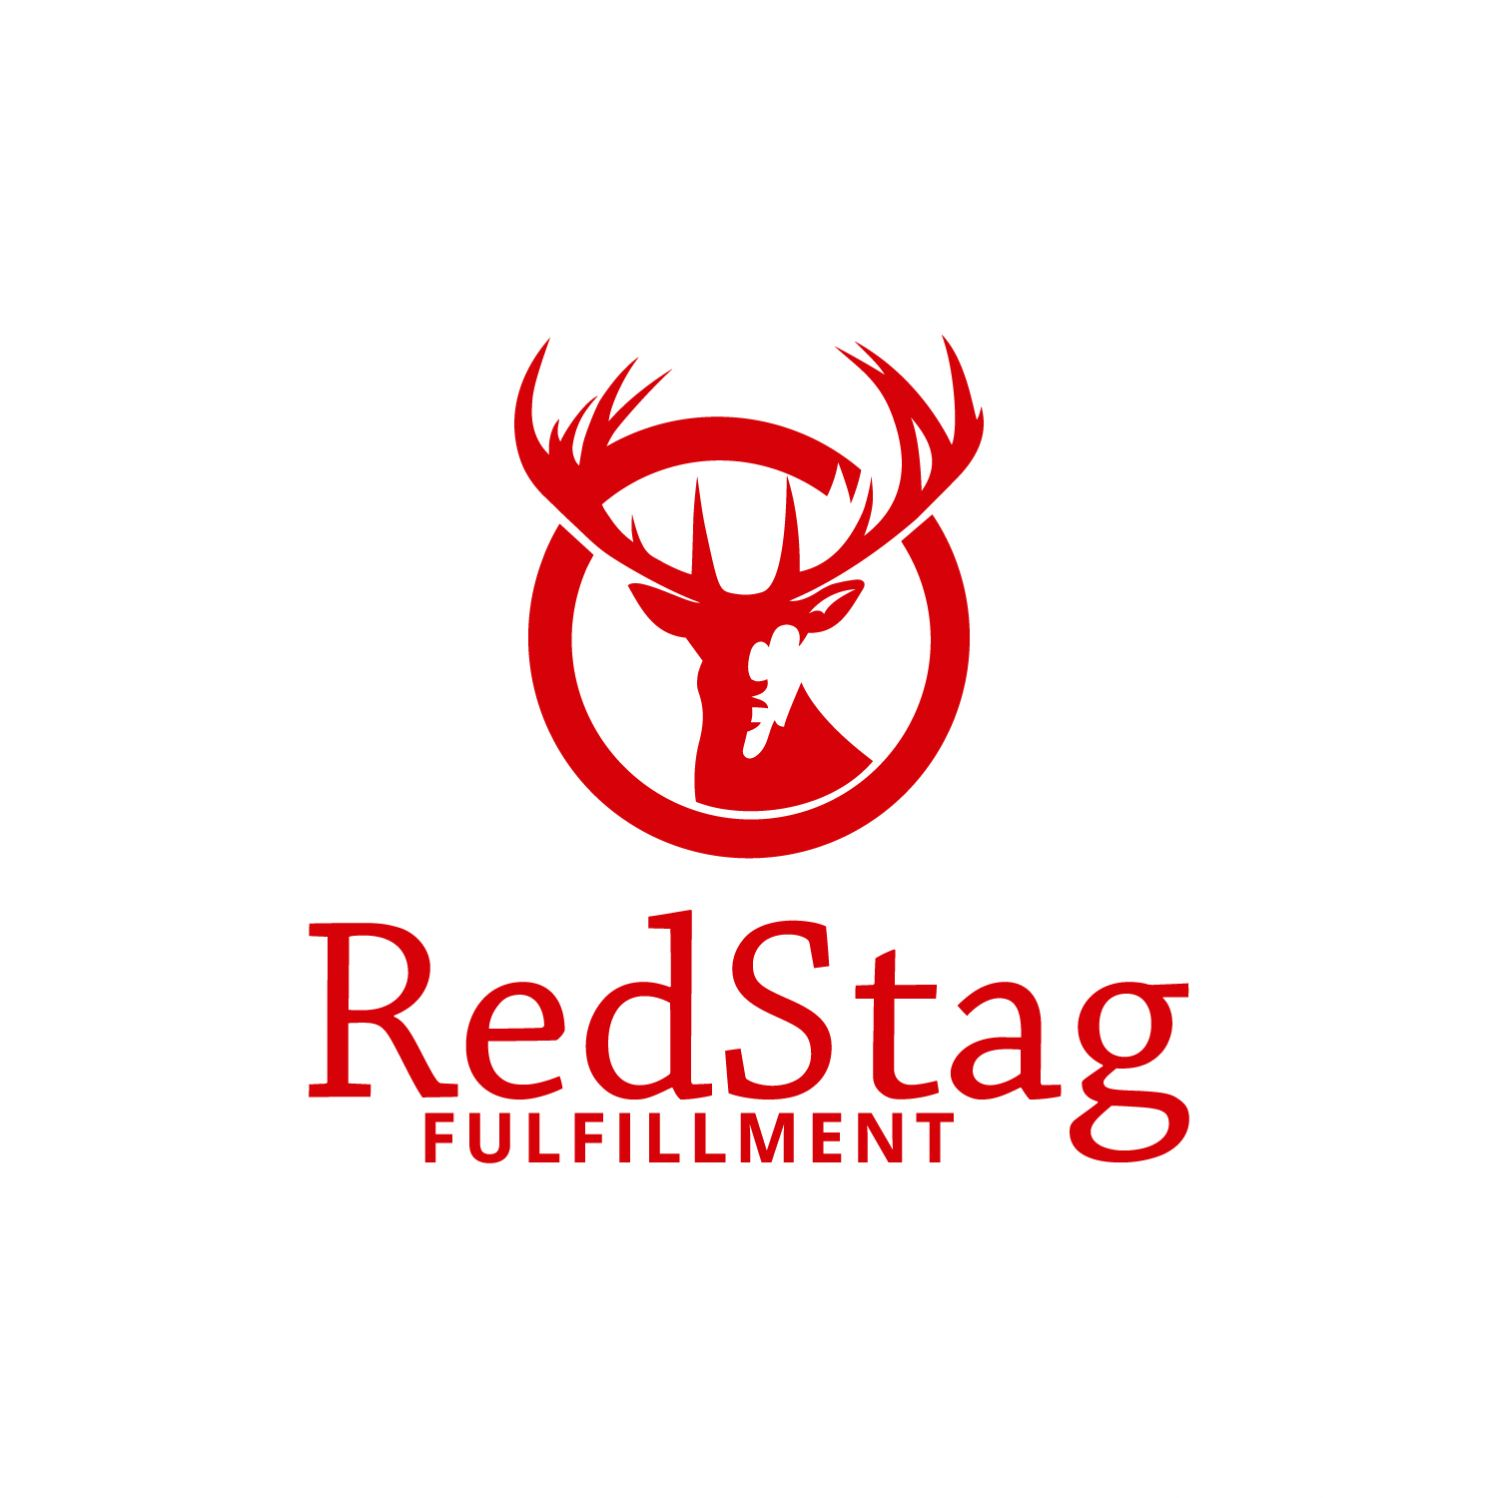 1d3951dea4 Red Stag Fulfillment Reviews: Pricing, Storage and Order Processing -  Financesonline.com